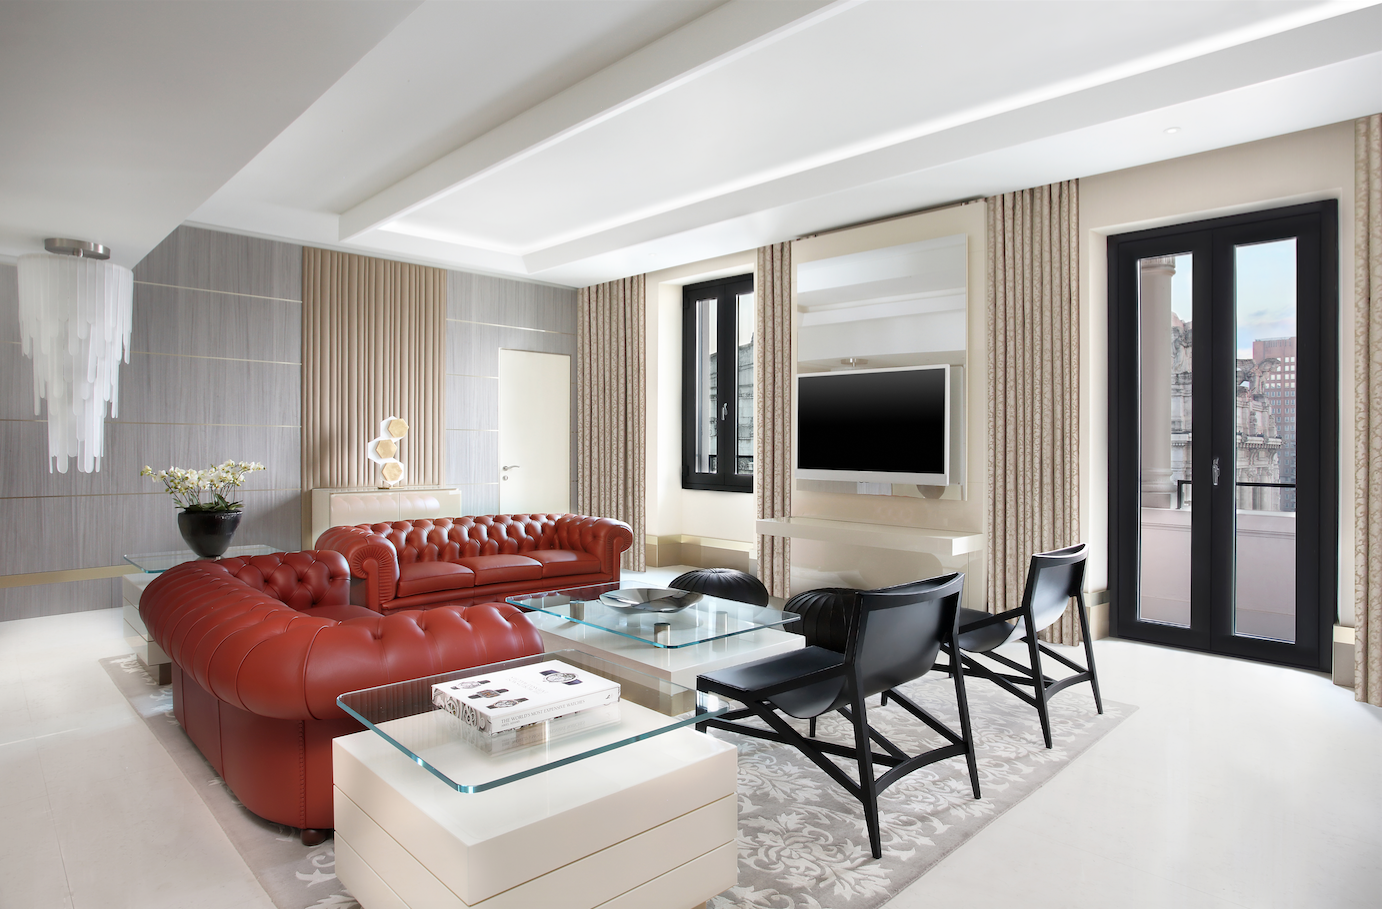 Excelsior Hotel Gallia A Luxury Collection Hotel Milan Valerie Wilson Travel